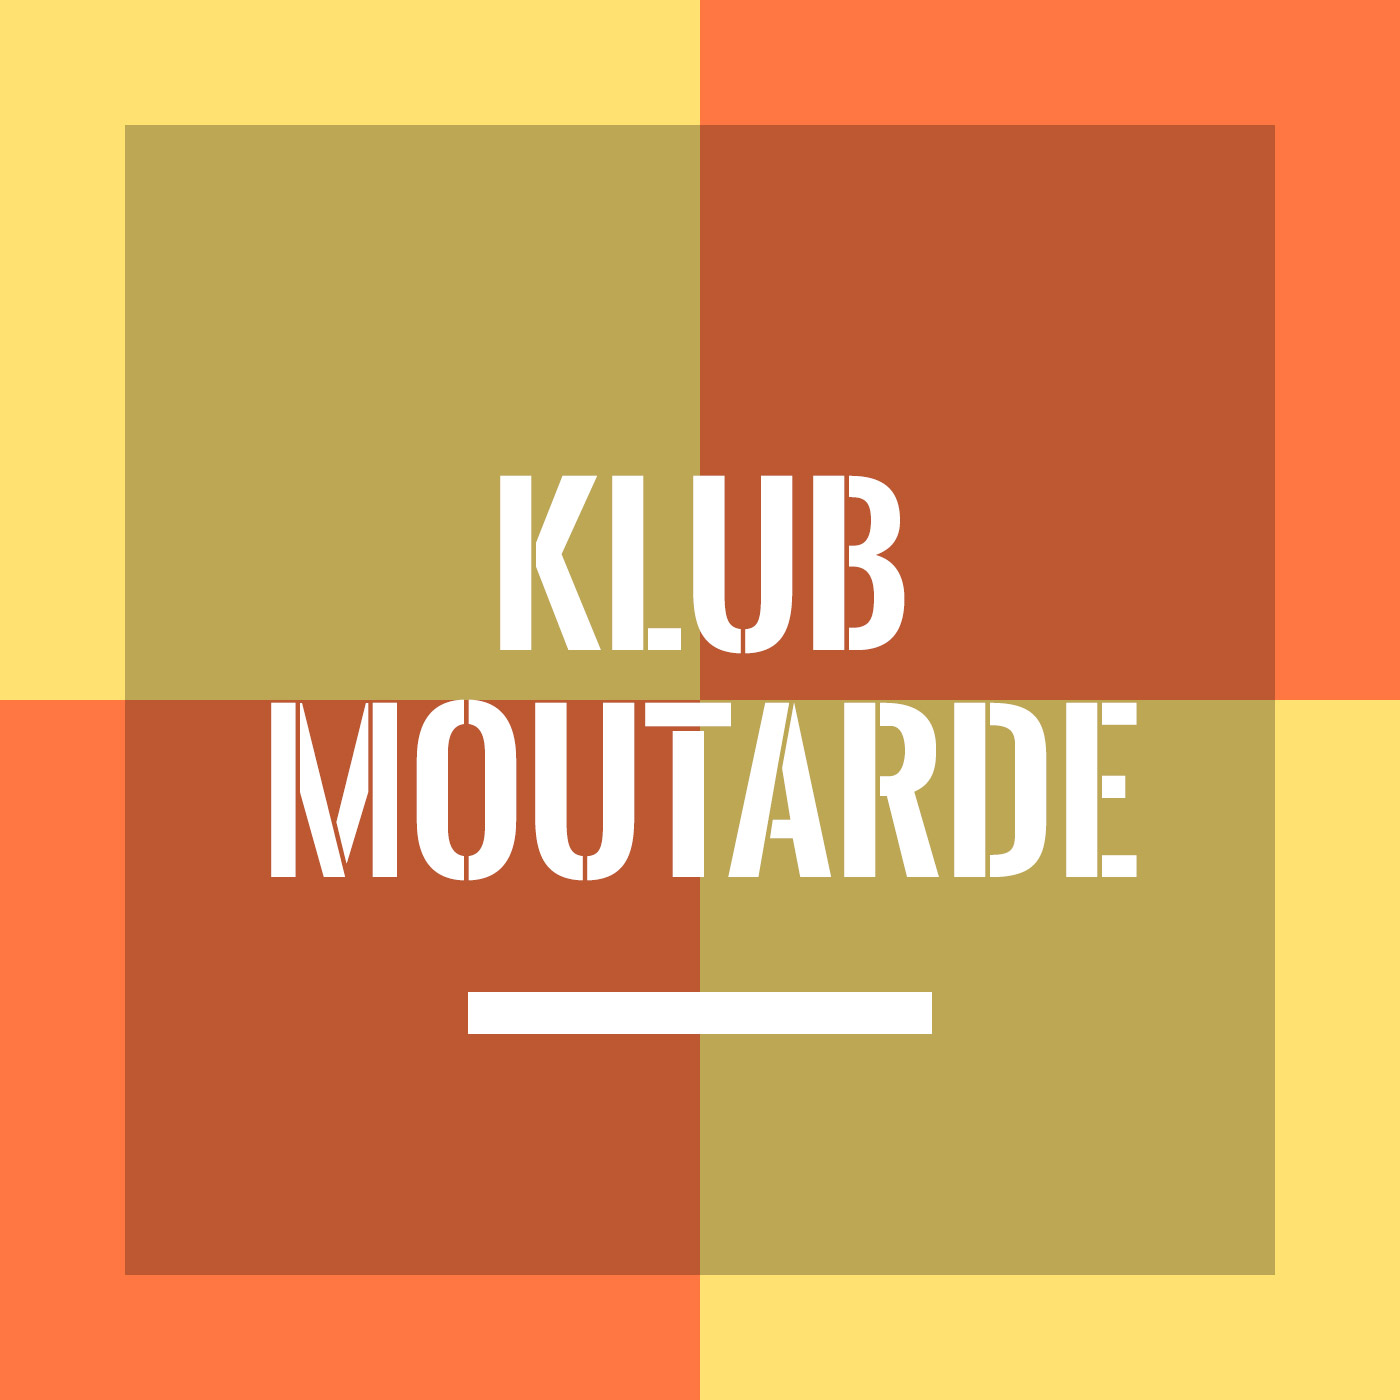 Klub Moutarde